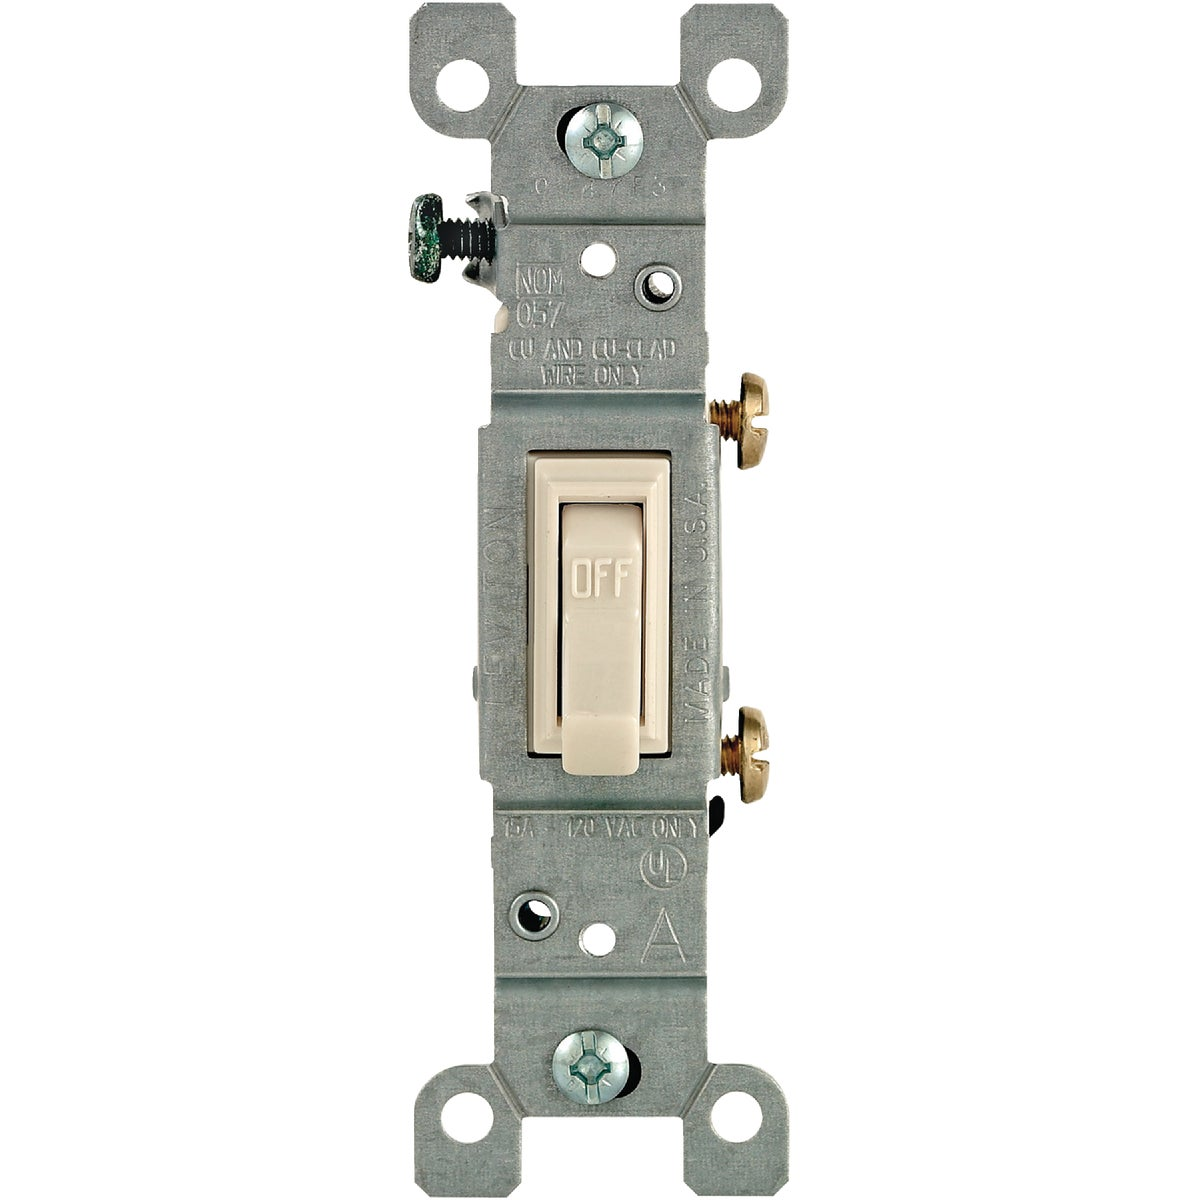 LT ALM GRND SWITCH - 208-01451-02T by Leviton Mfg Co